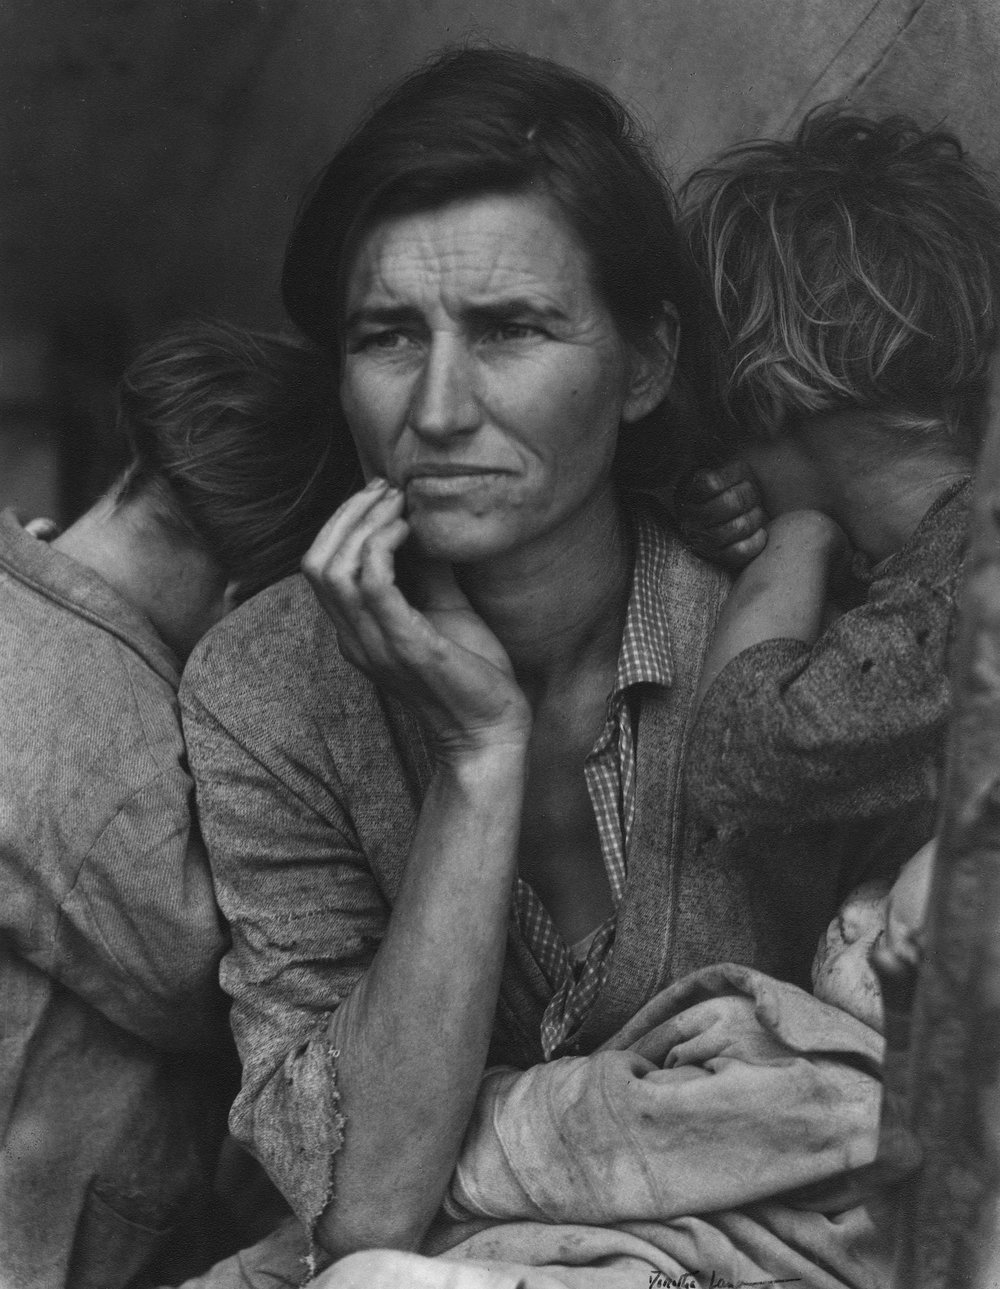 Migrant Mother, Nipomo, California, 1936. © The Dorothea Lange Collection, the Oakland Museum of California